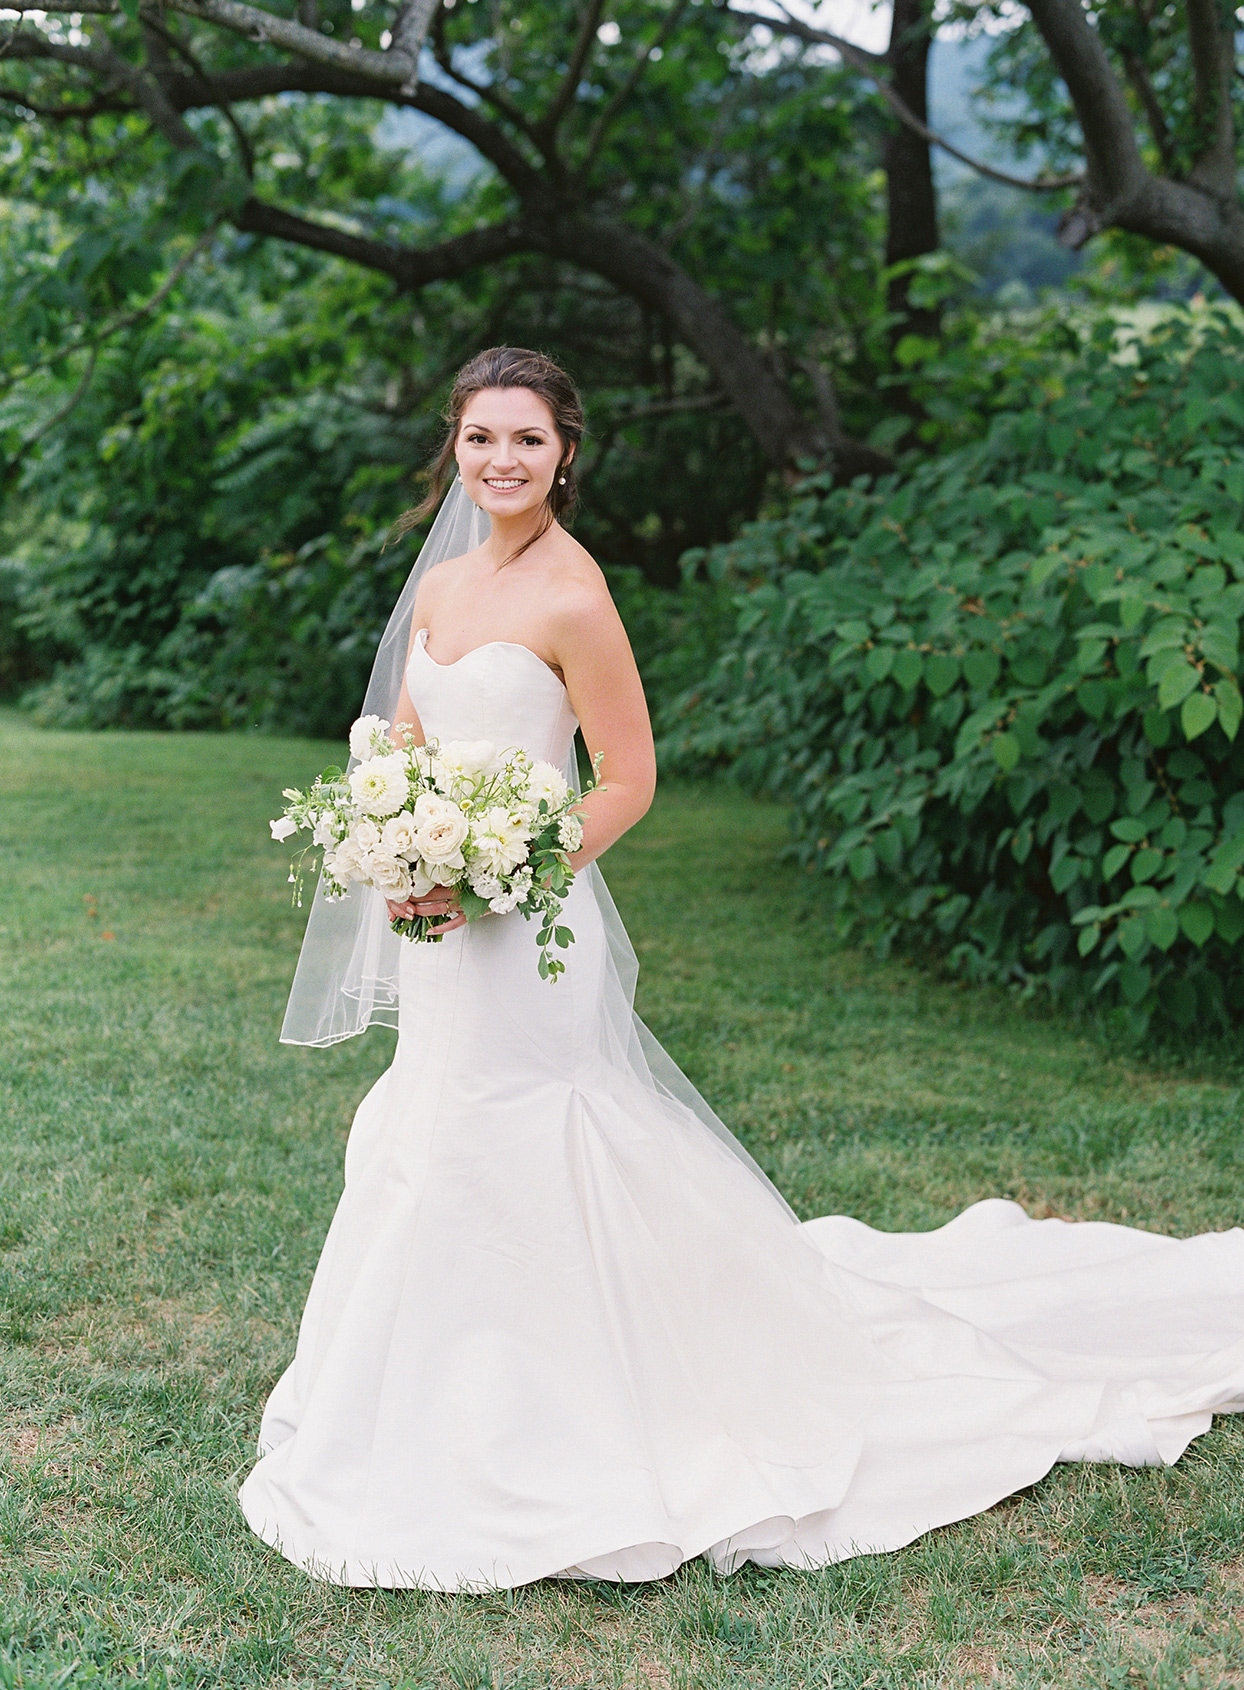 bride in white dress on manicured lawn